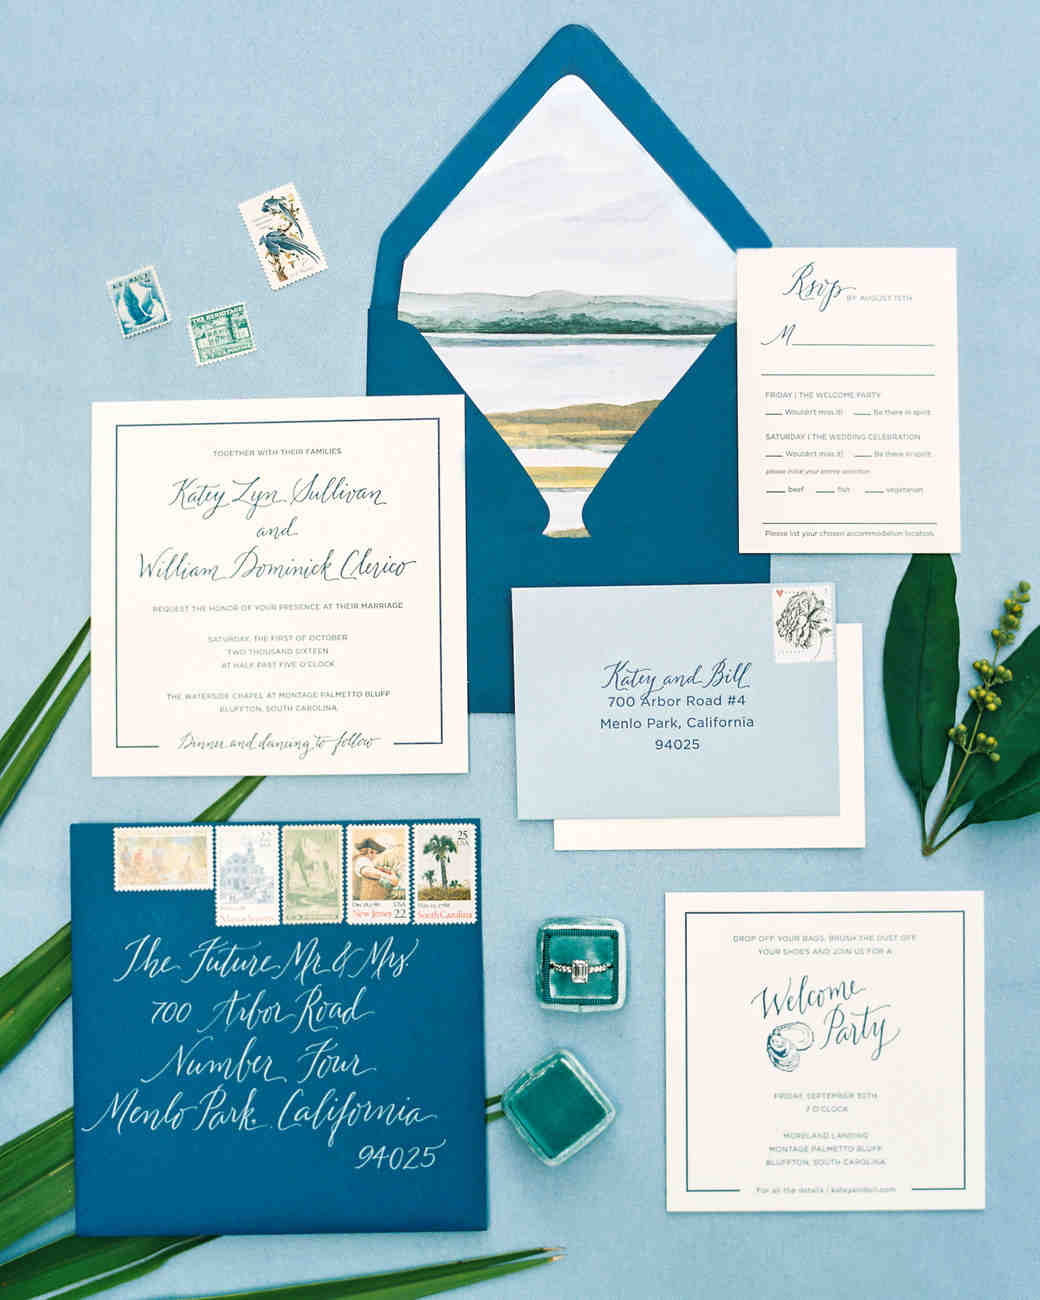 Beach Wedding Invitations That Set The Mood For A Seaside Celebration Martha Stewart Weddings: Hawaiian Beach Theme Wedding Invitation At Websimilar.org